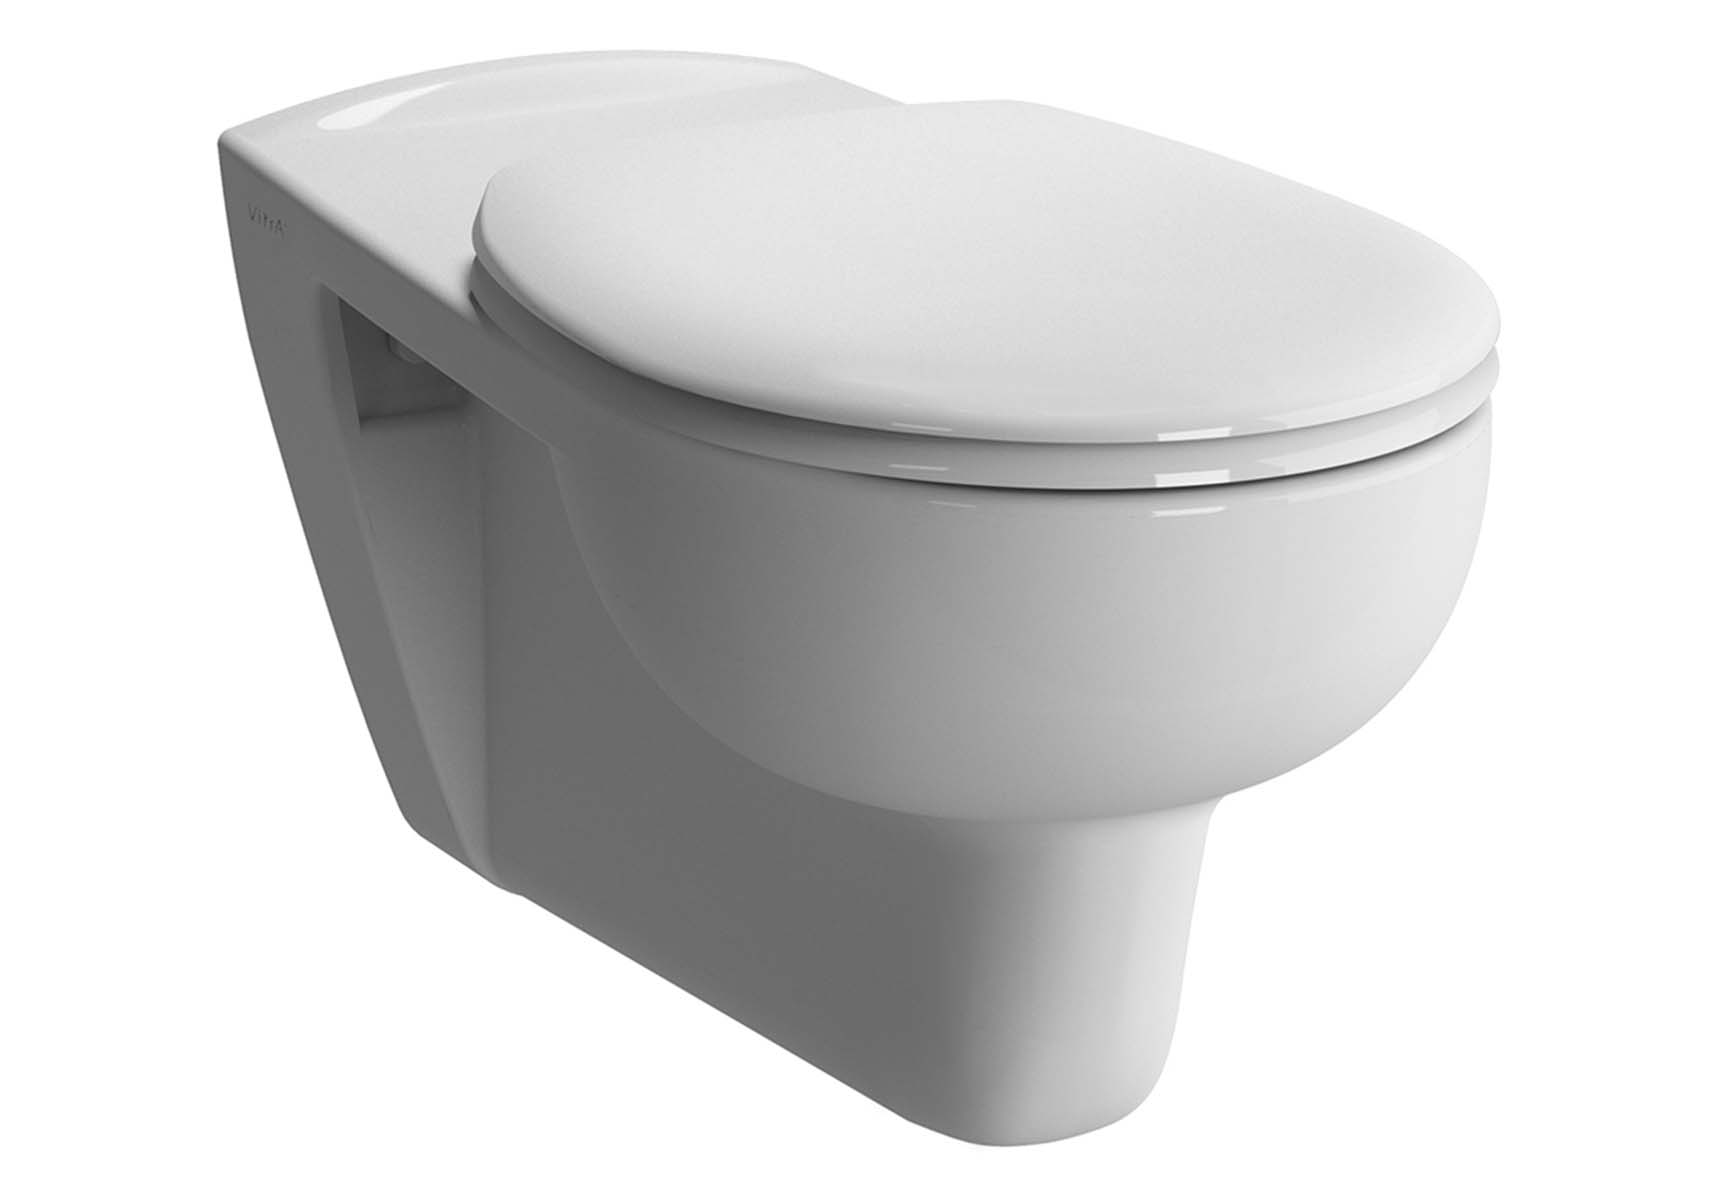 Conforma Special Needs Wall-Hung Wc Pan, 52 cm, High